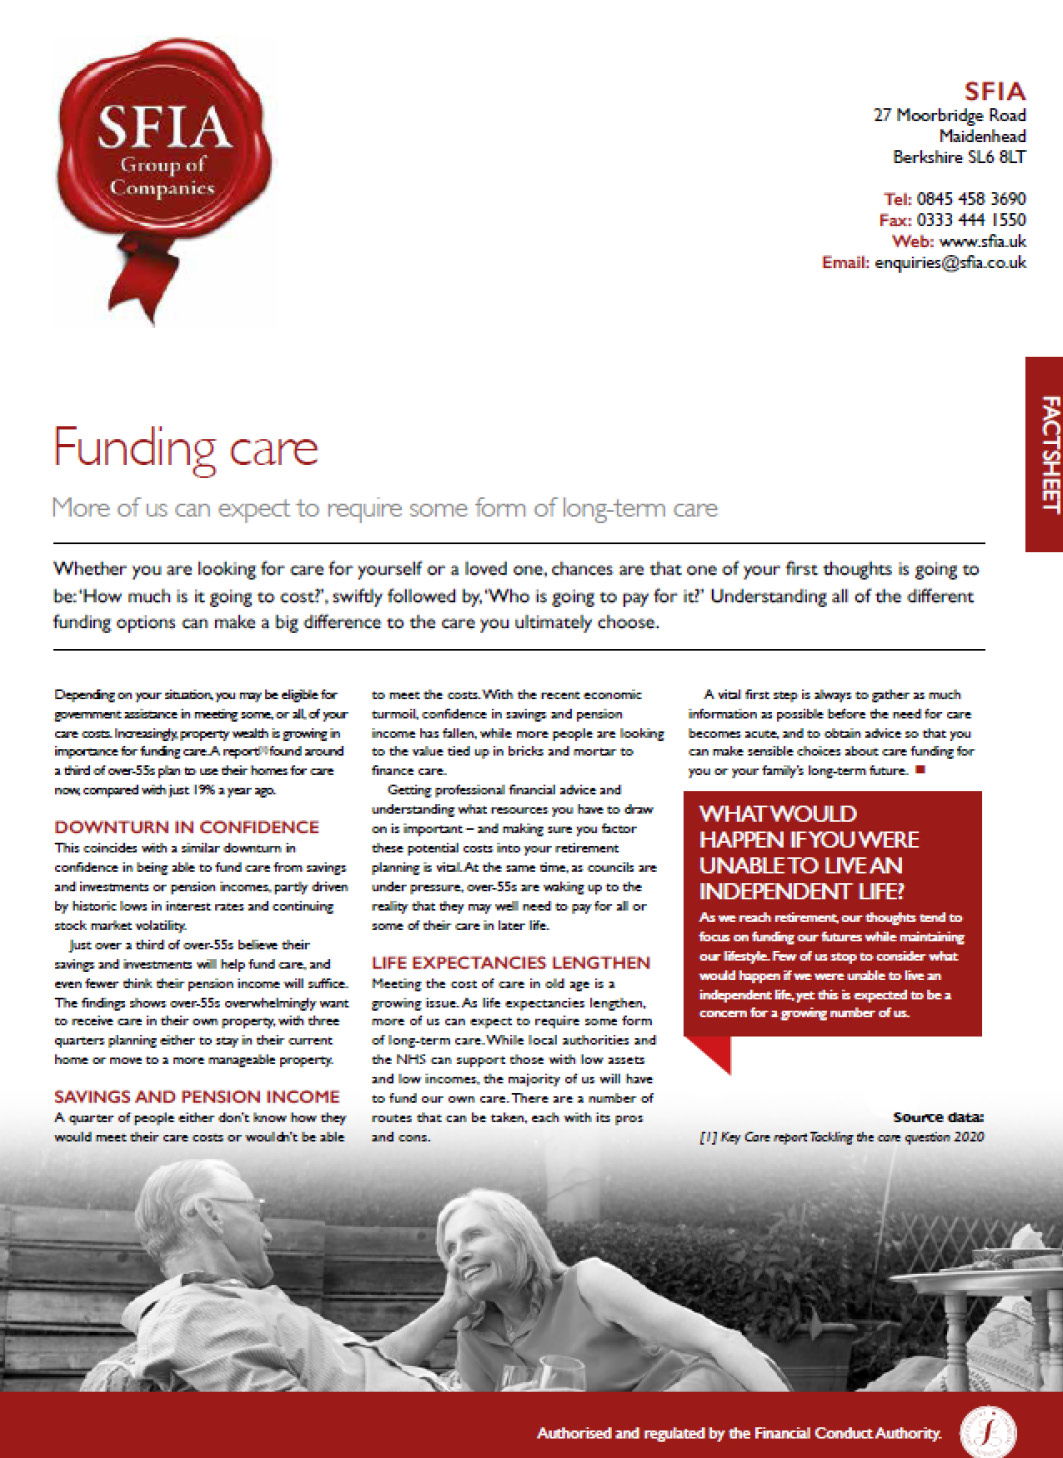 funding care image